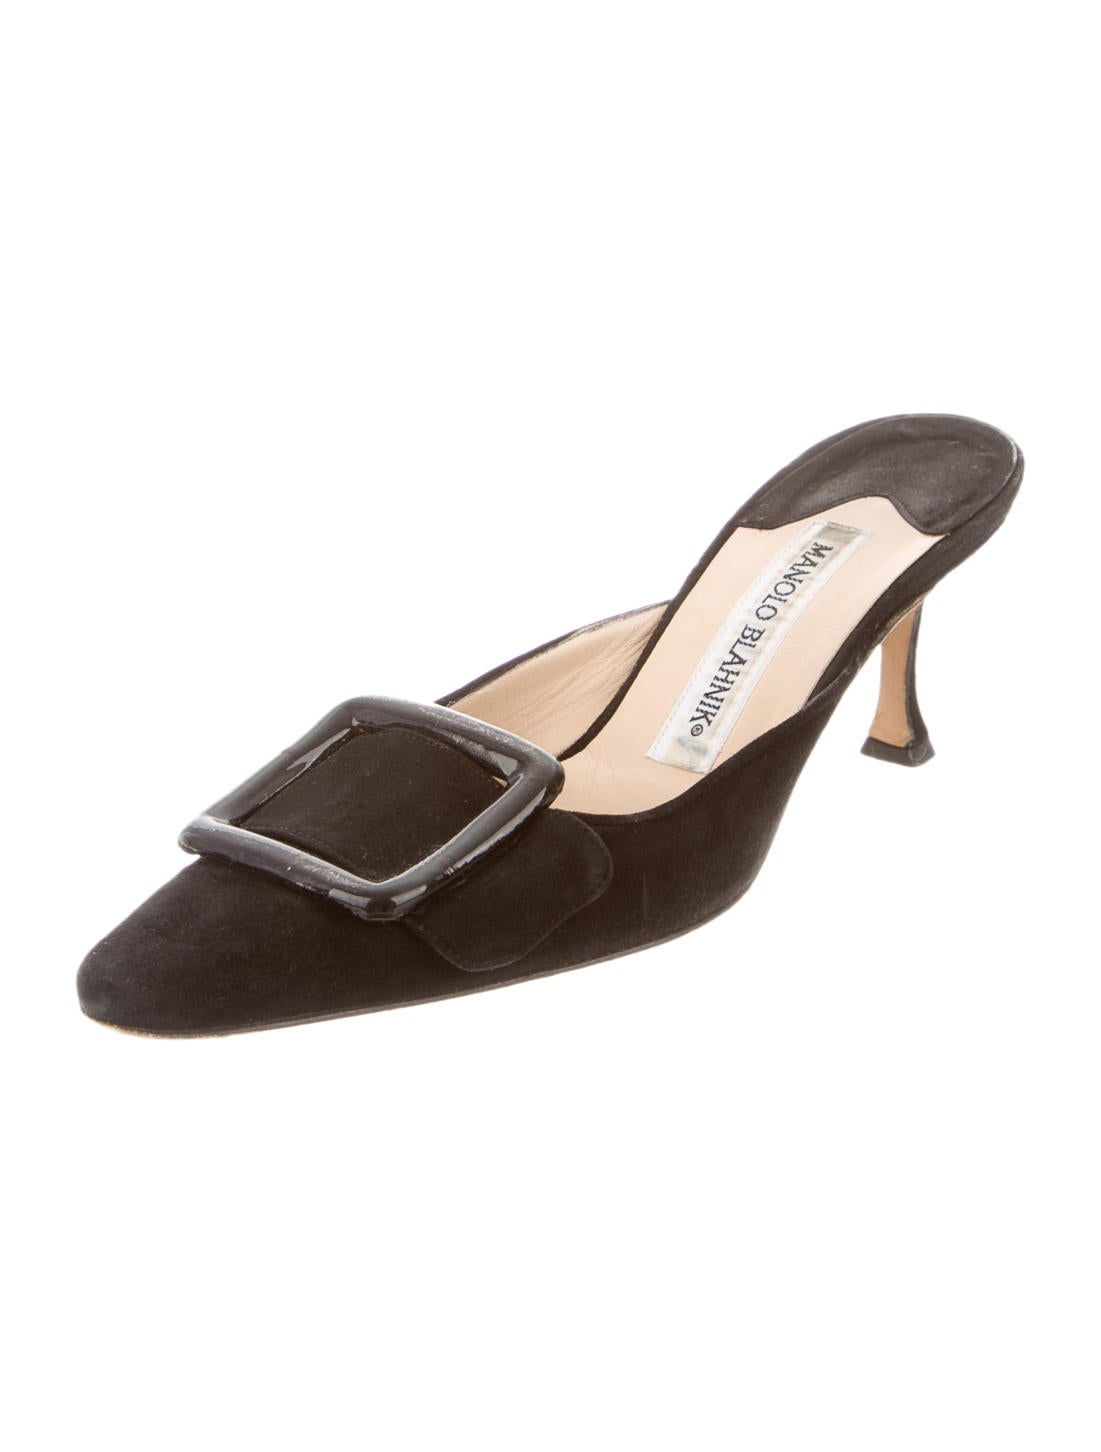 Manolo blahnik mules shoes moo37488 the realreal for Shoes by manolo blahnik